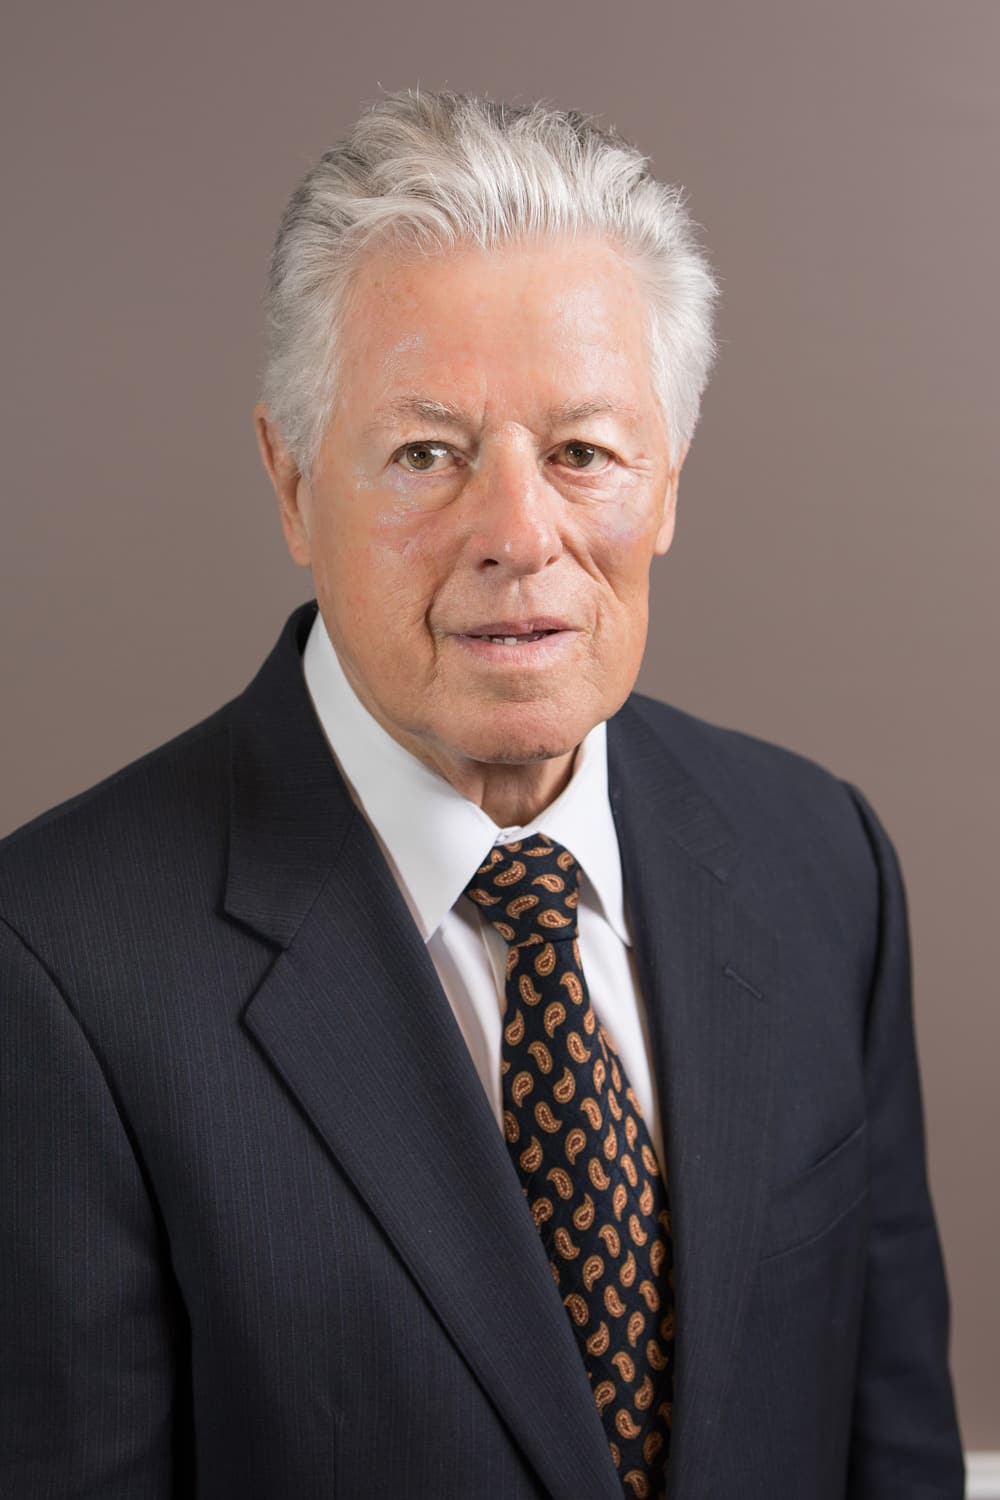 Governor James J. Florio to Receive Lifetime Achievement Award